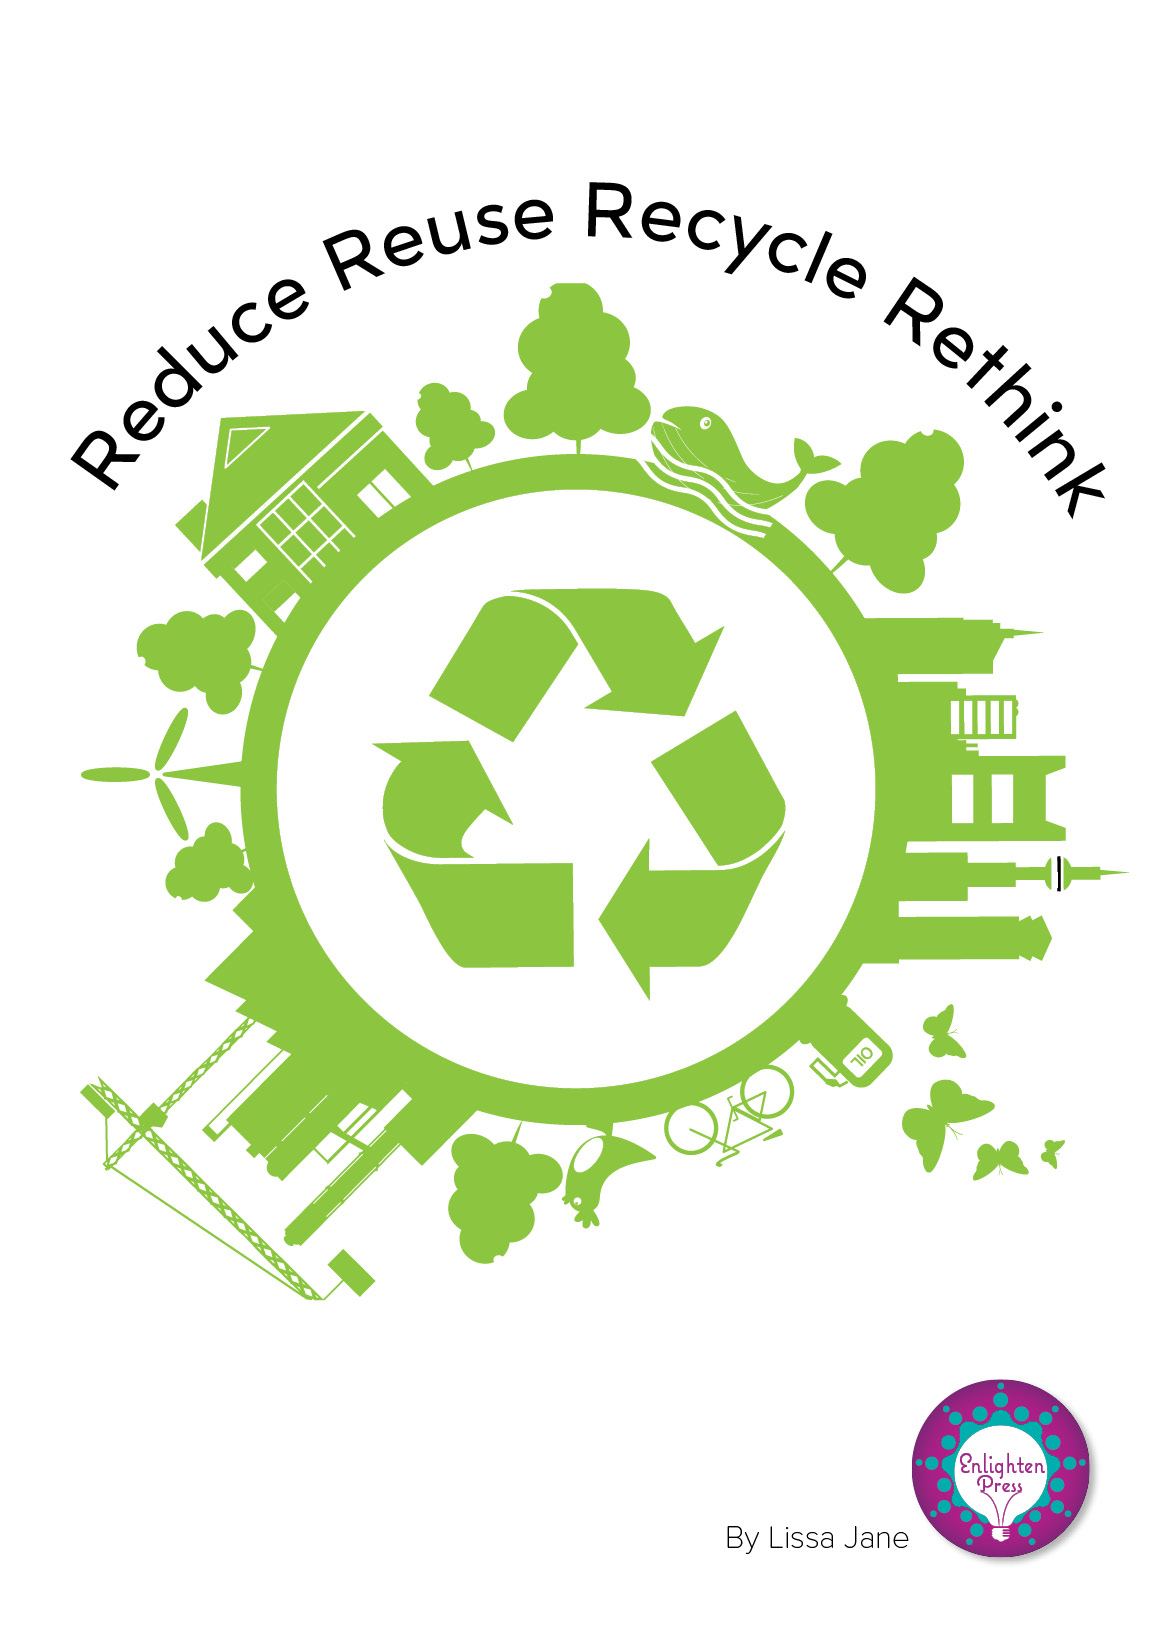 Reduce Reuse Recycle Rethink